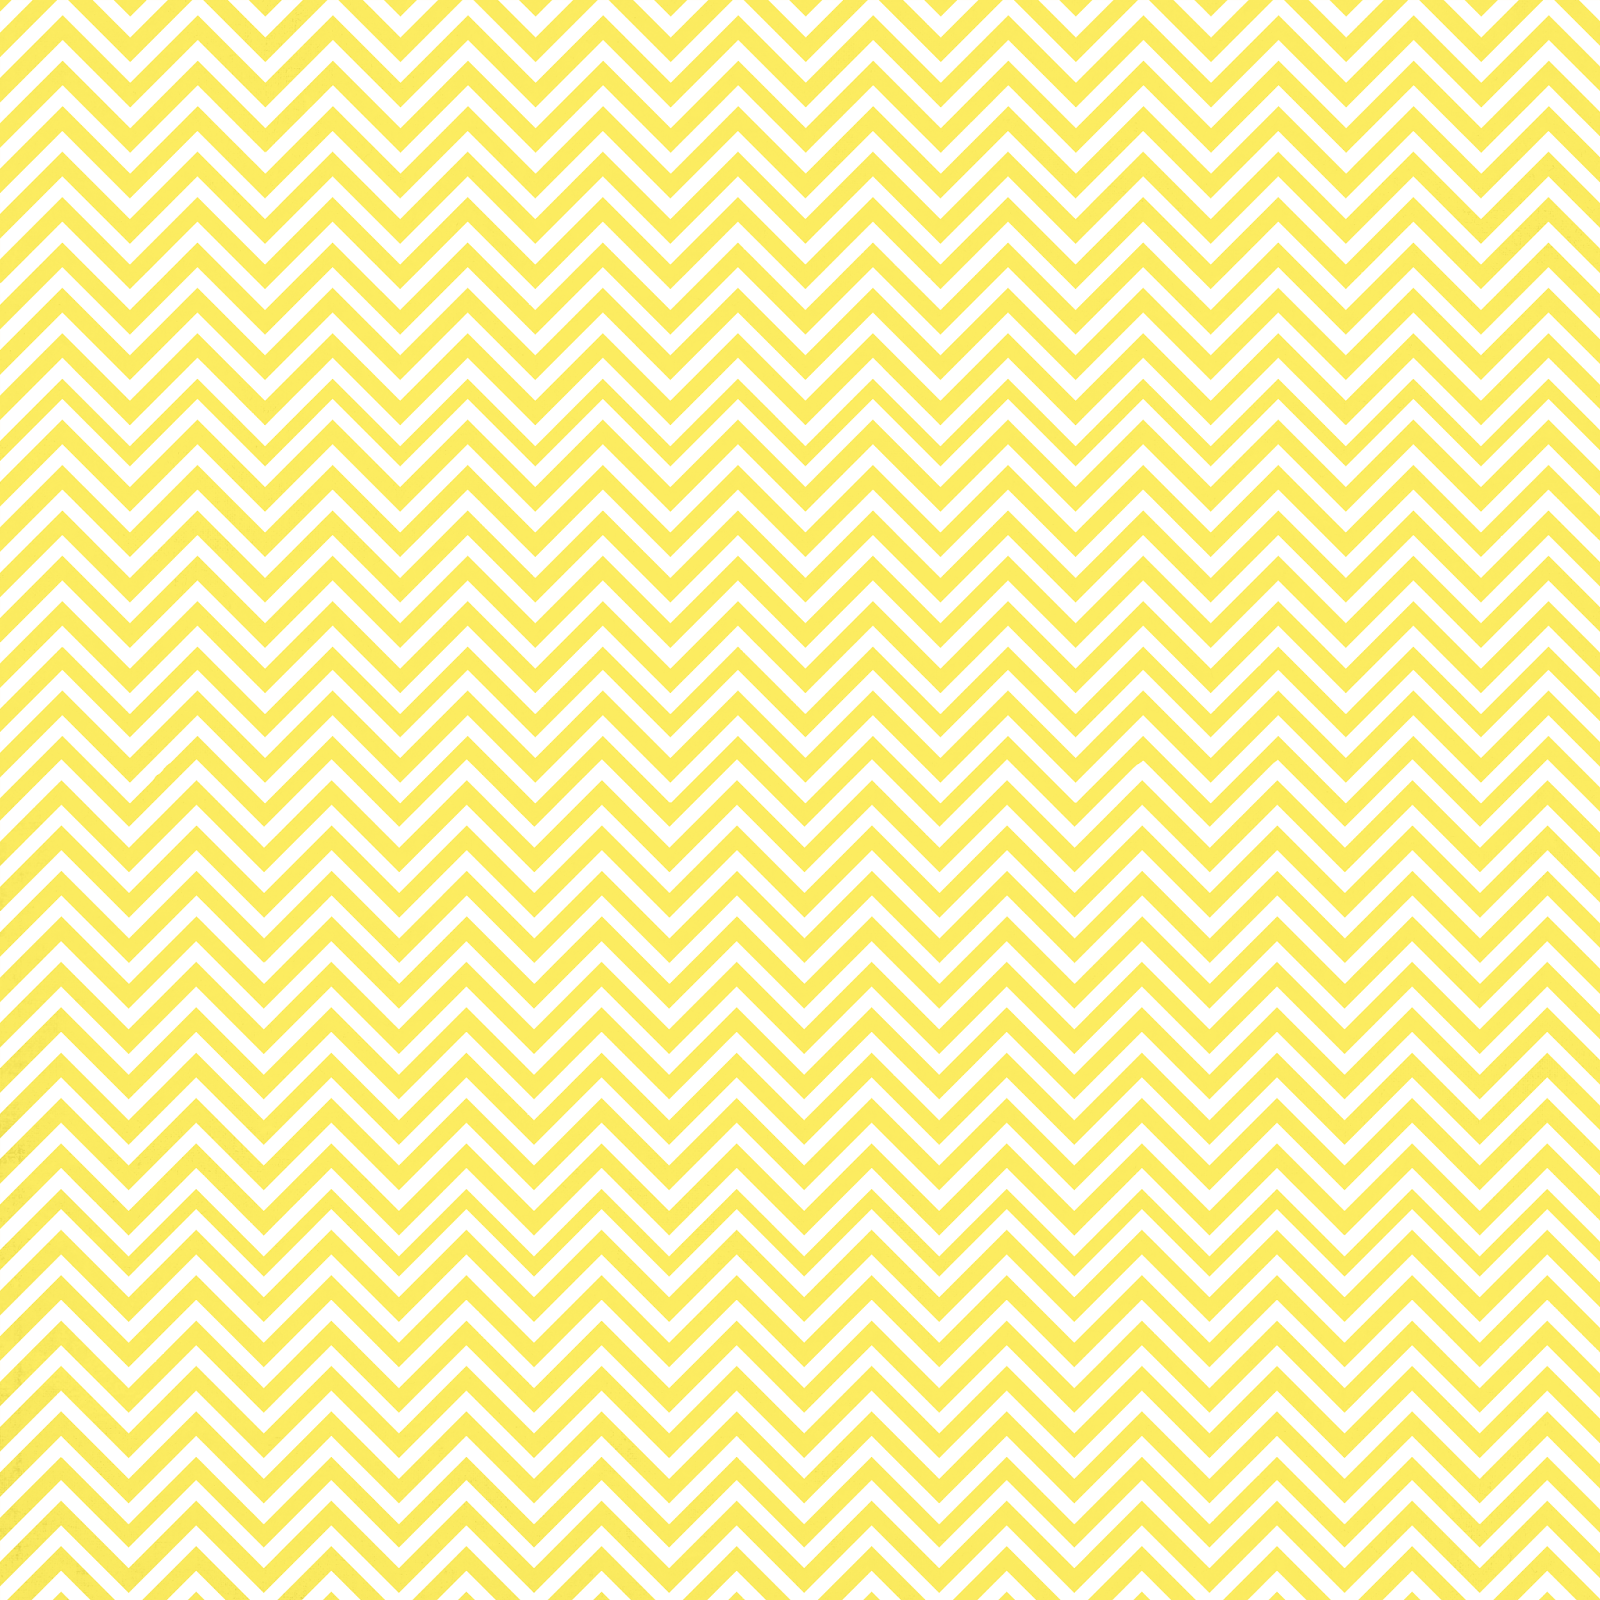 Yellow And White Chevron Background Yellow white chevron wrap 1600x1600